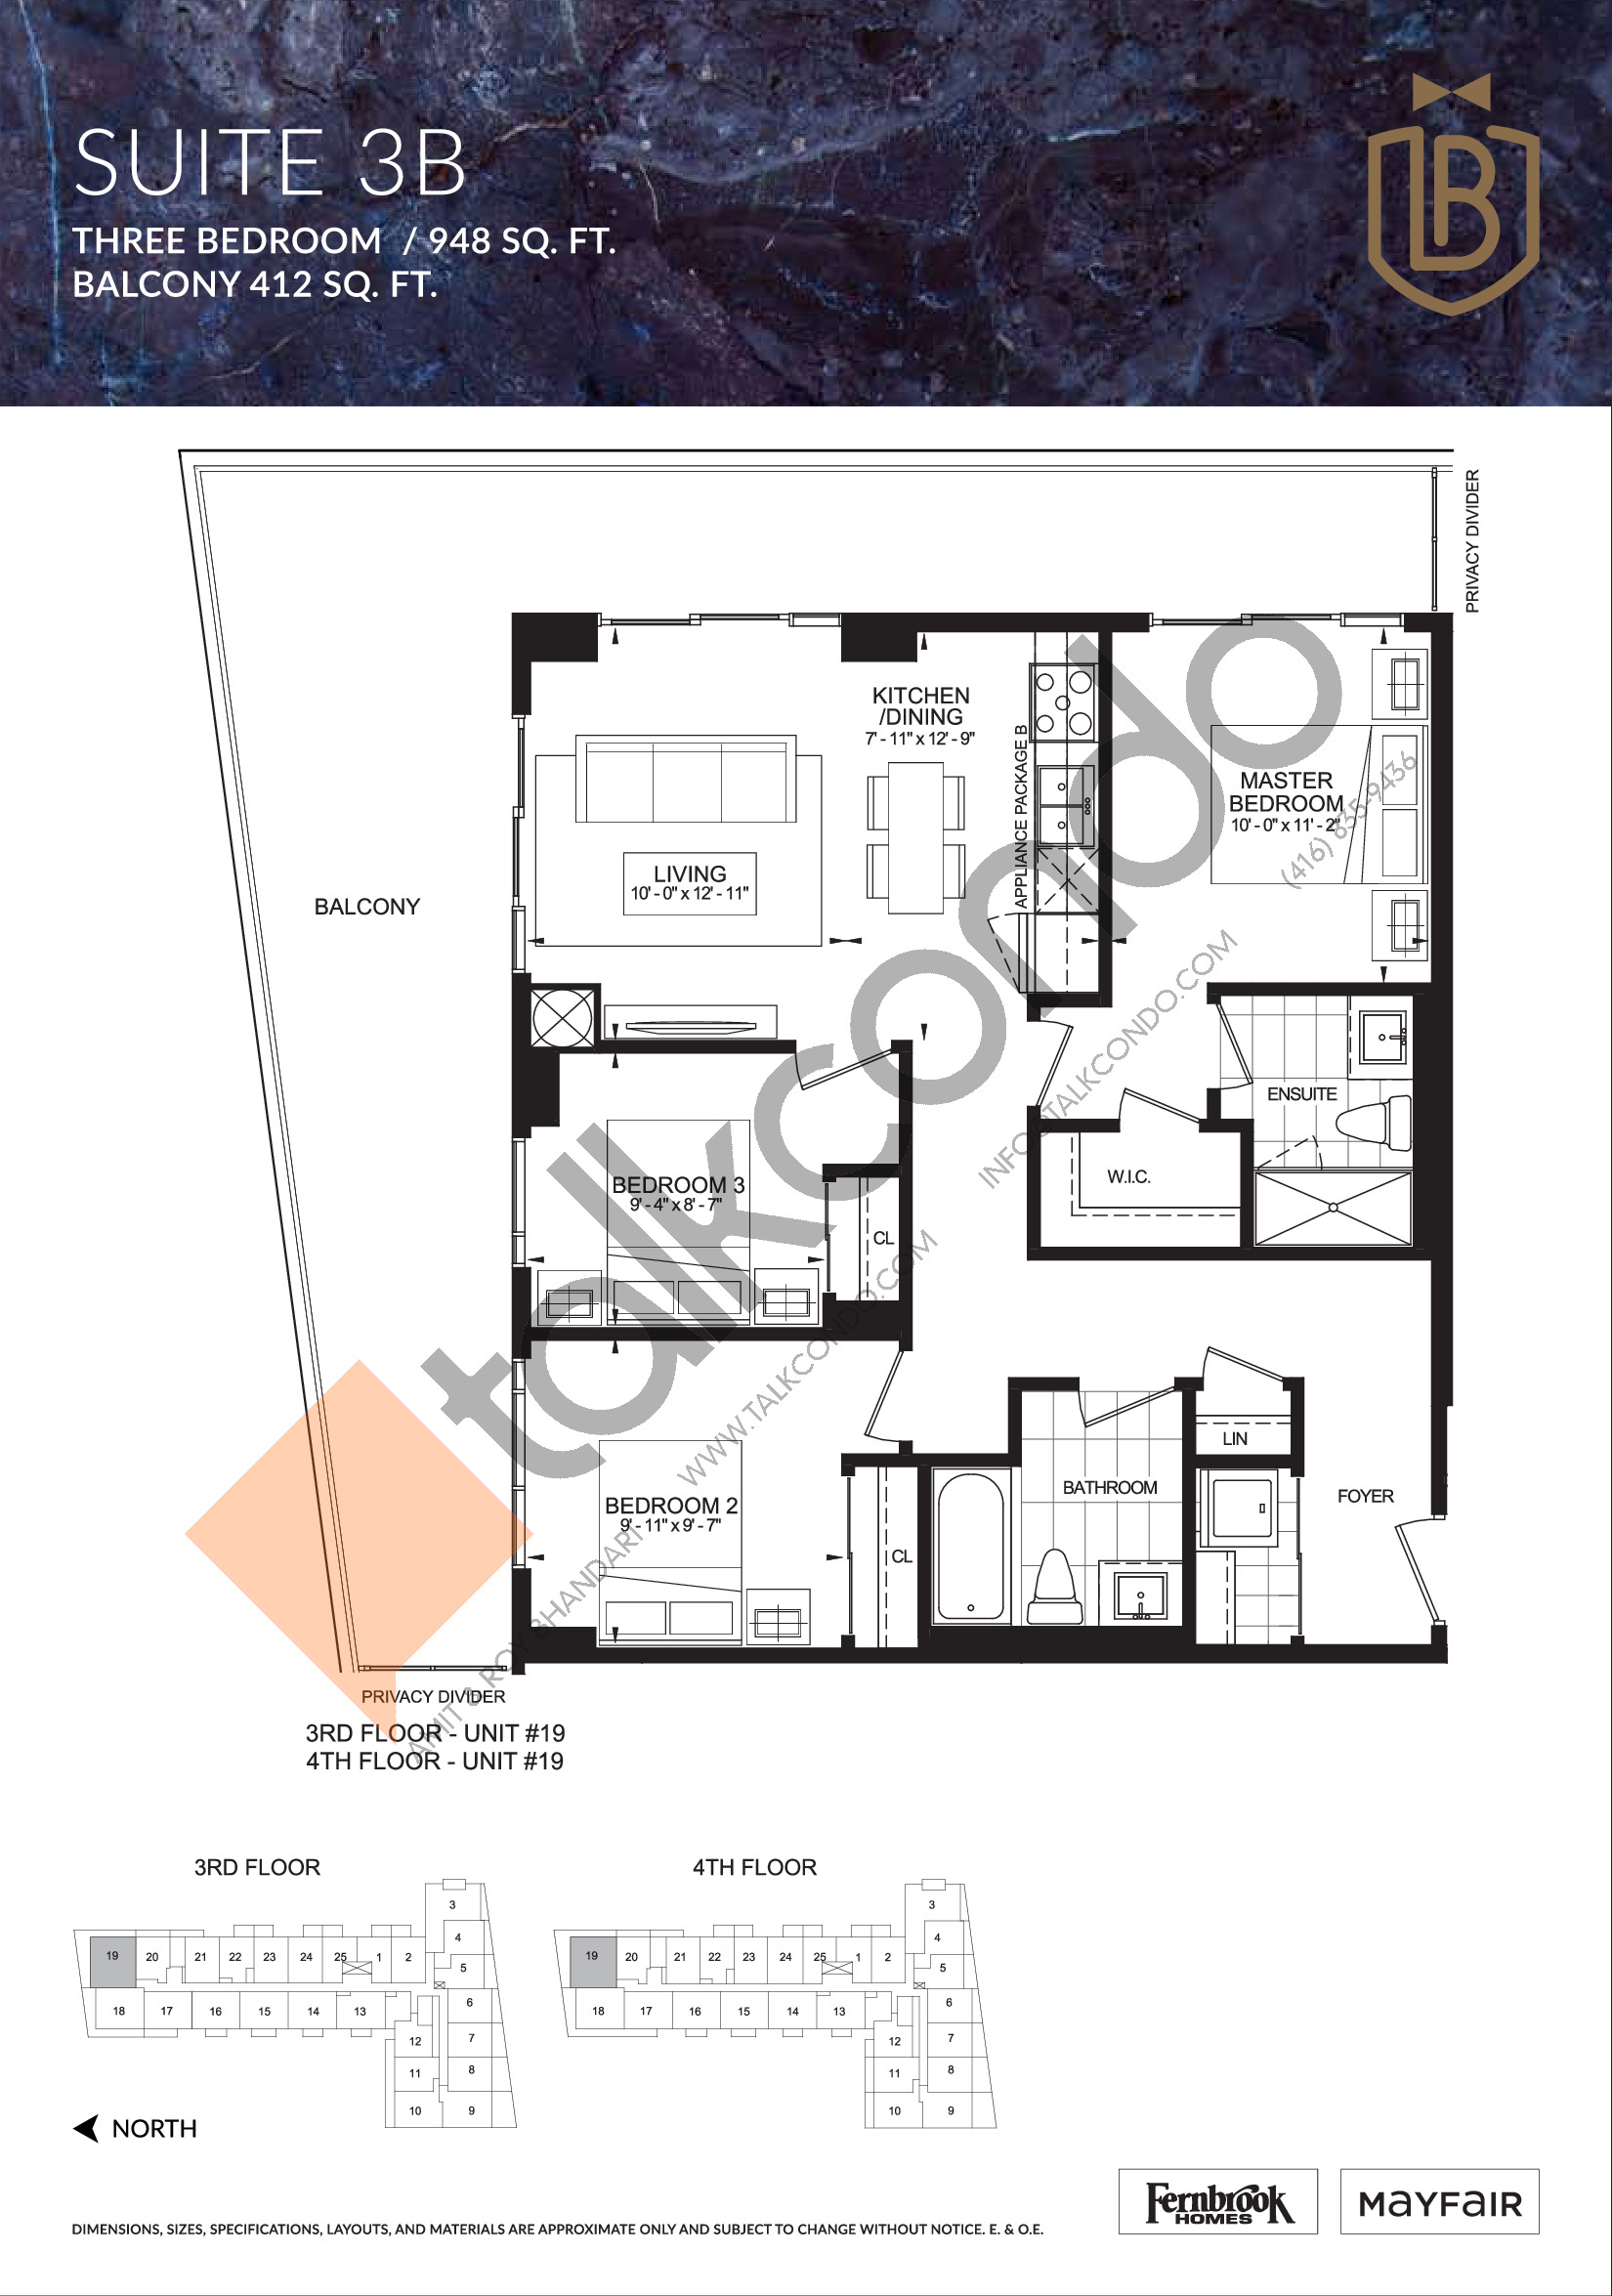 Suite 3B Floor Plan at The Butler Condos - 948 sq.ft